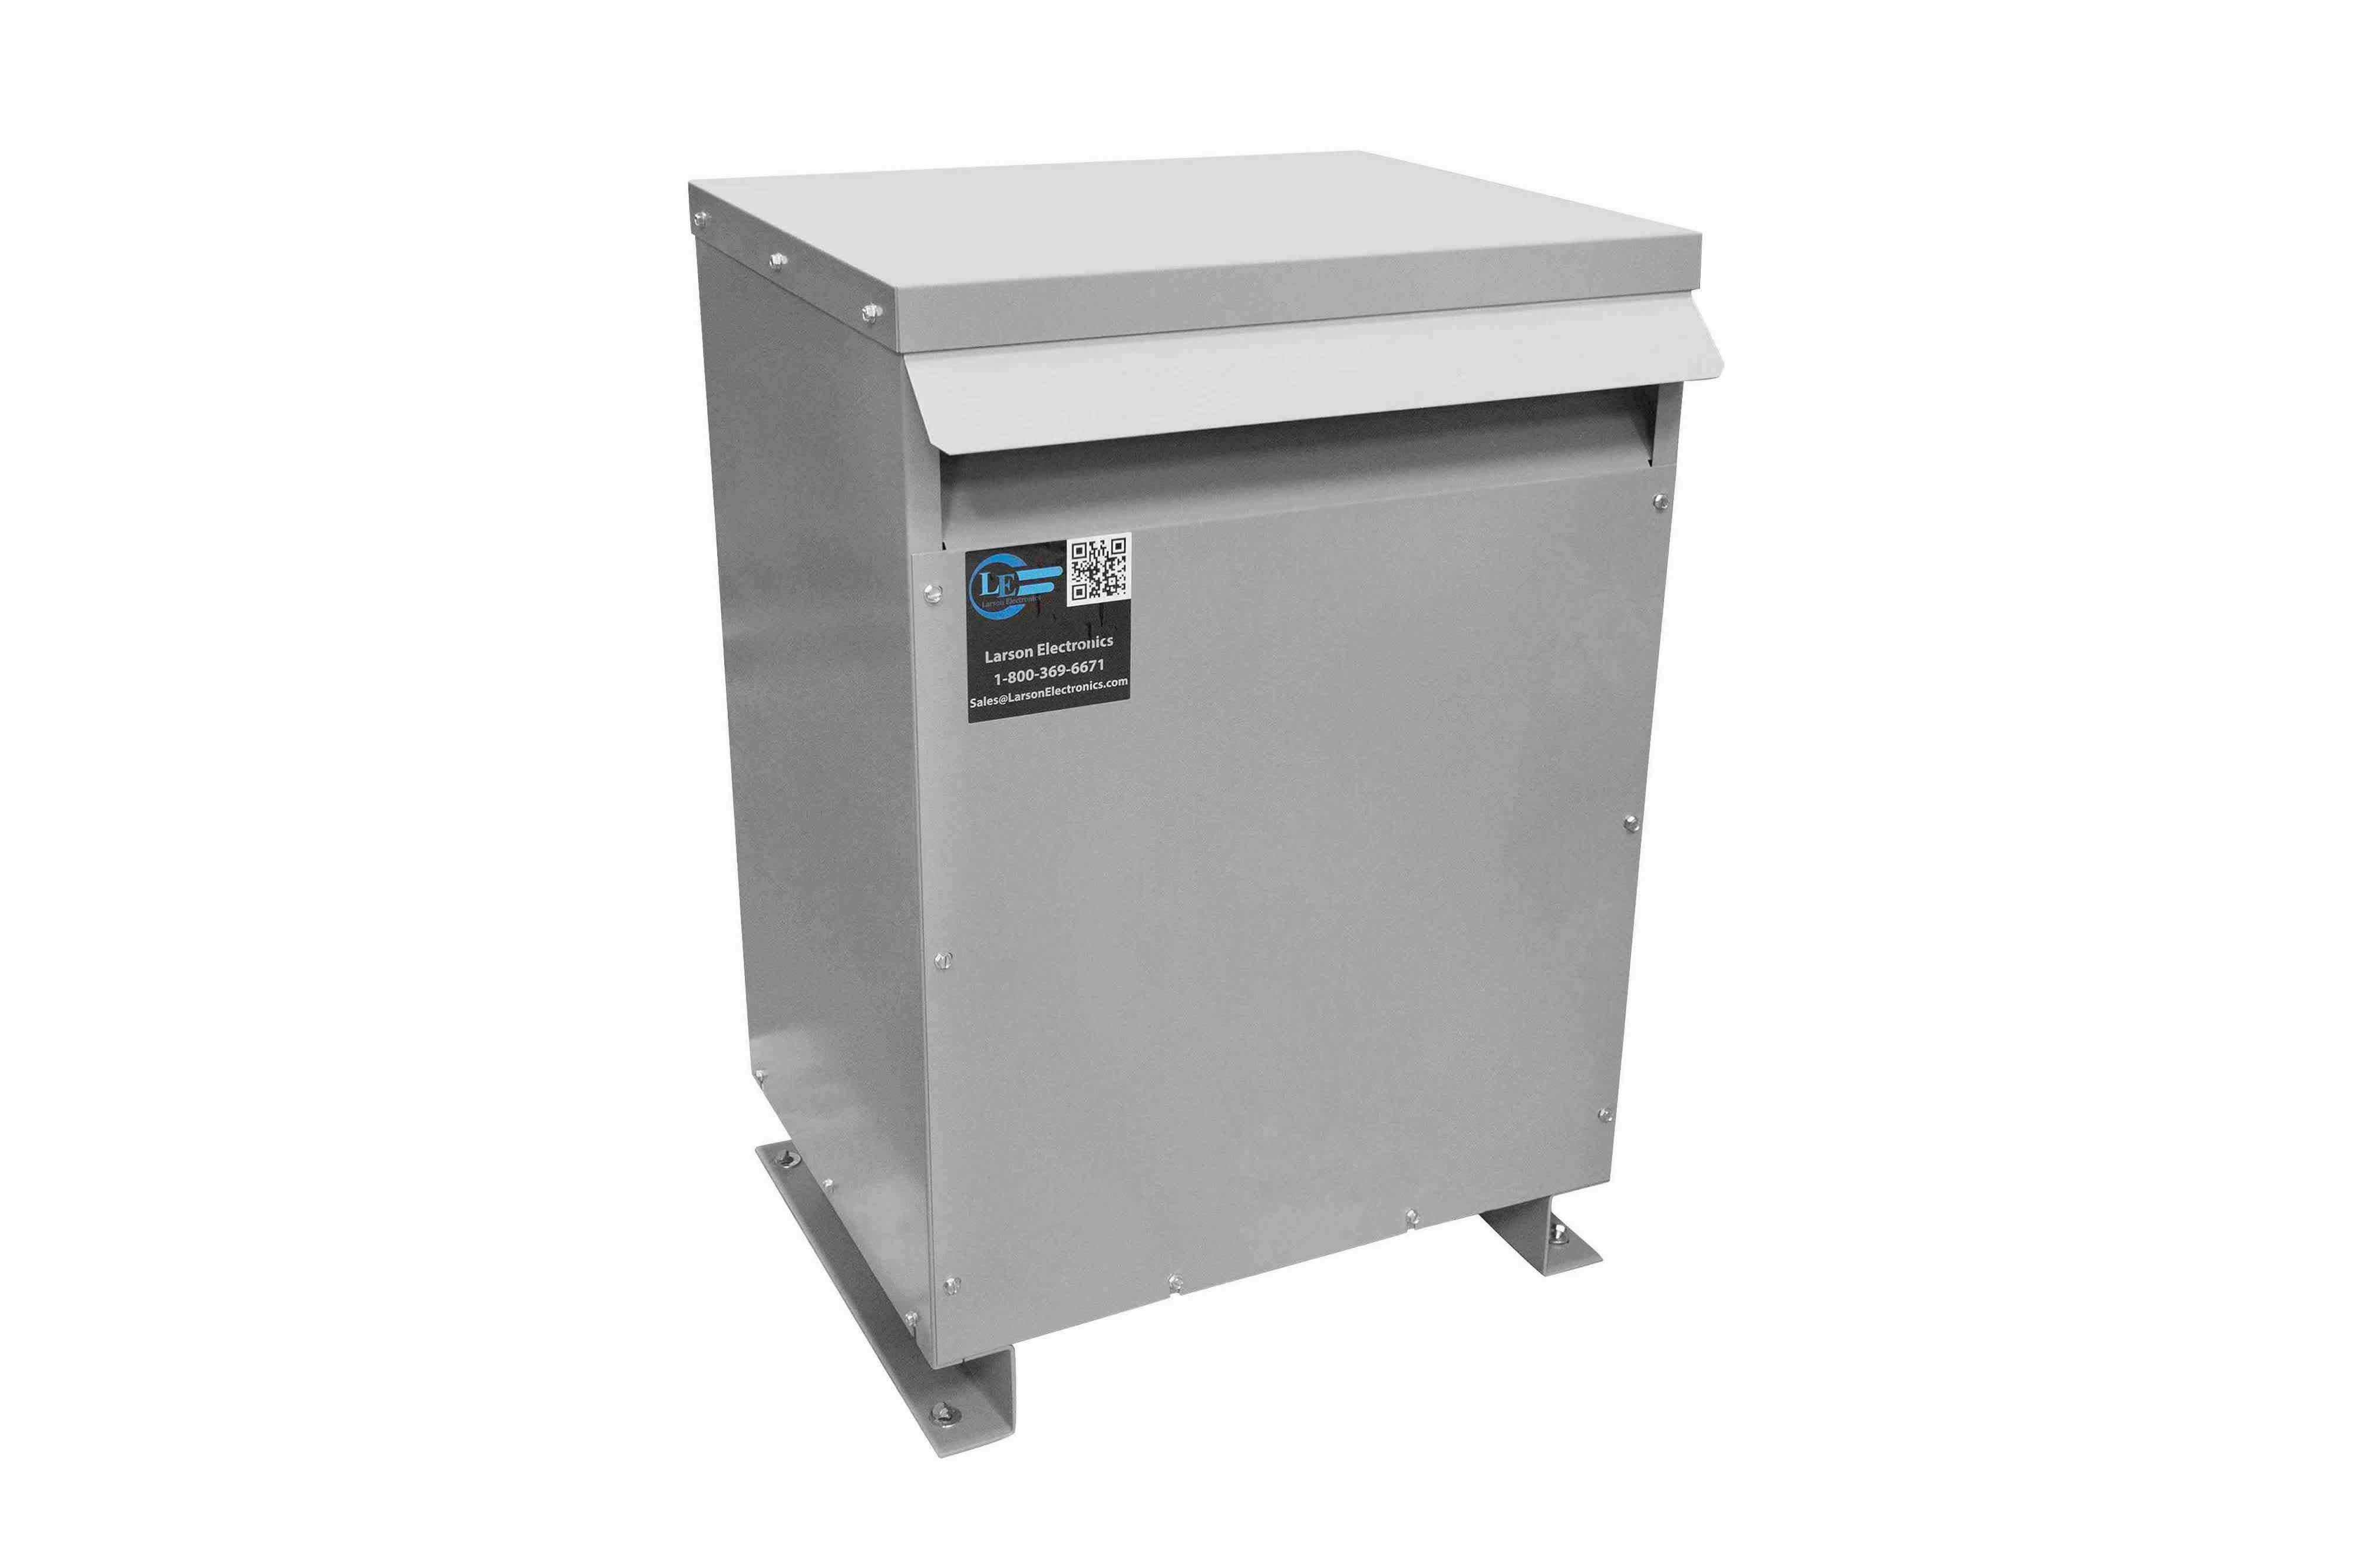 47.5 kVA 3PH Isolation Transformer, 400V Wye Primary, 480Y/277 Wye-N Secondary, N3R, Ventilated, 60 Hz